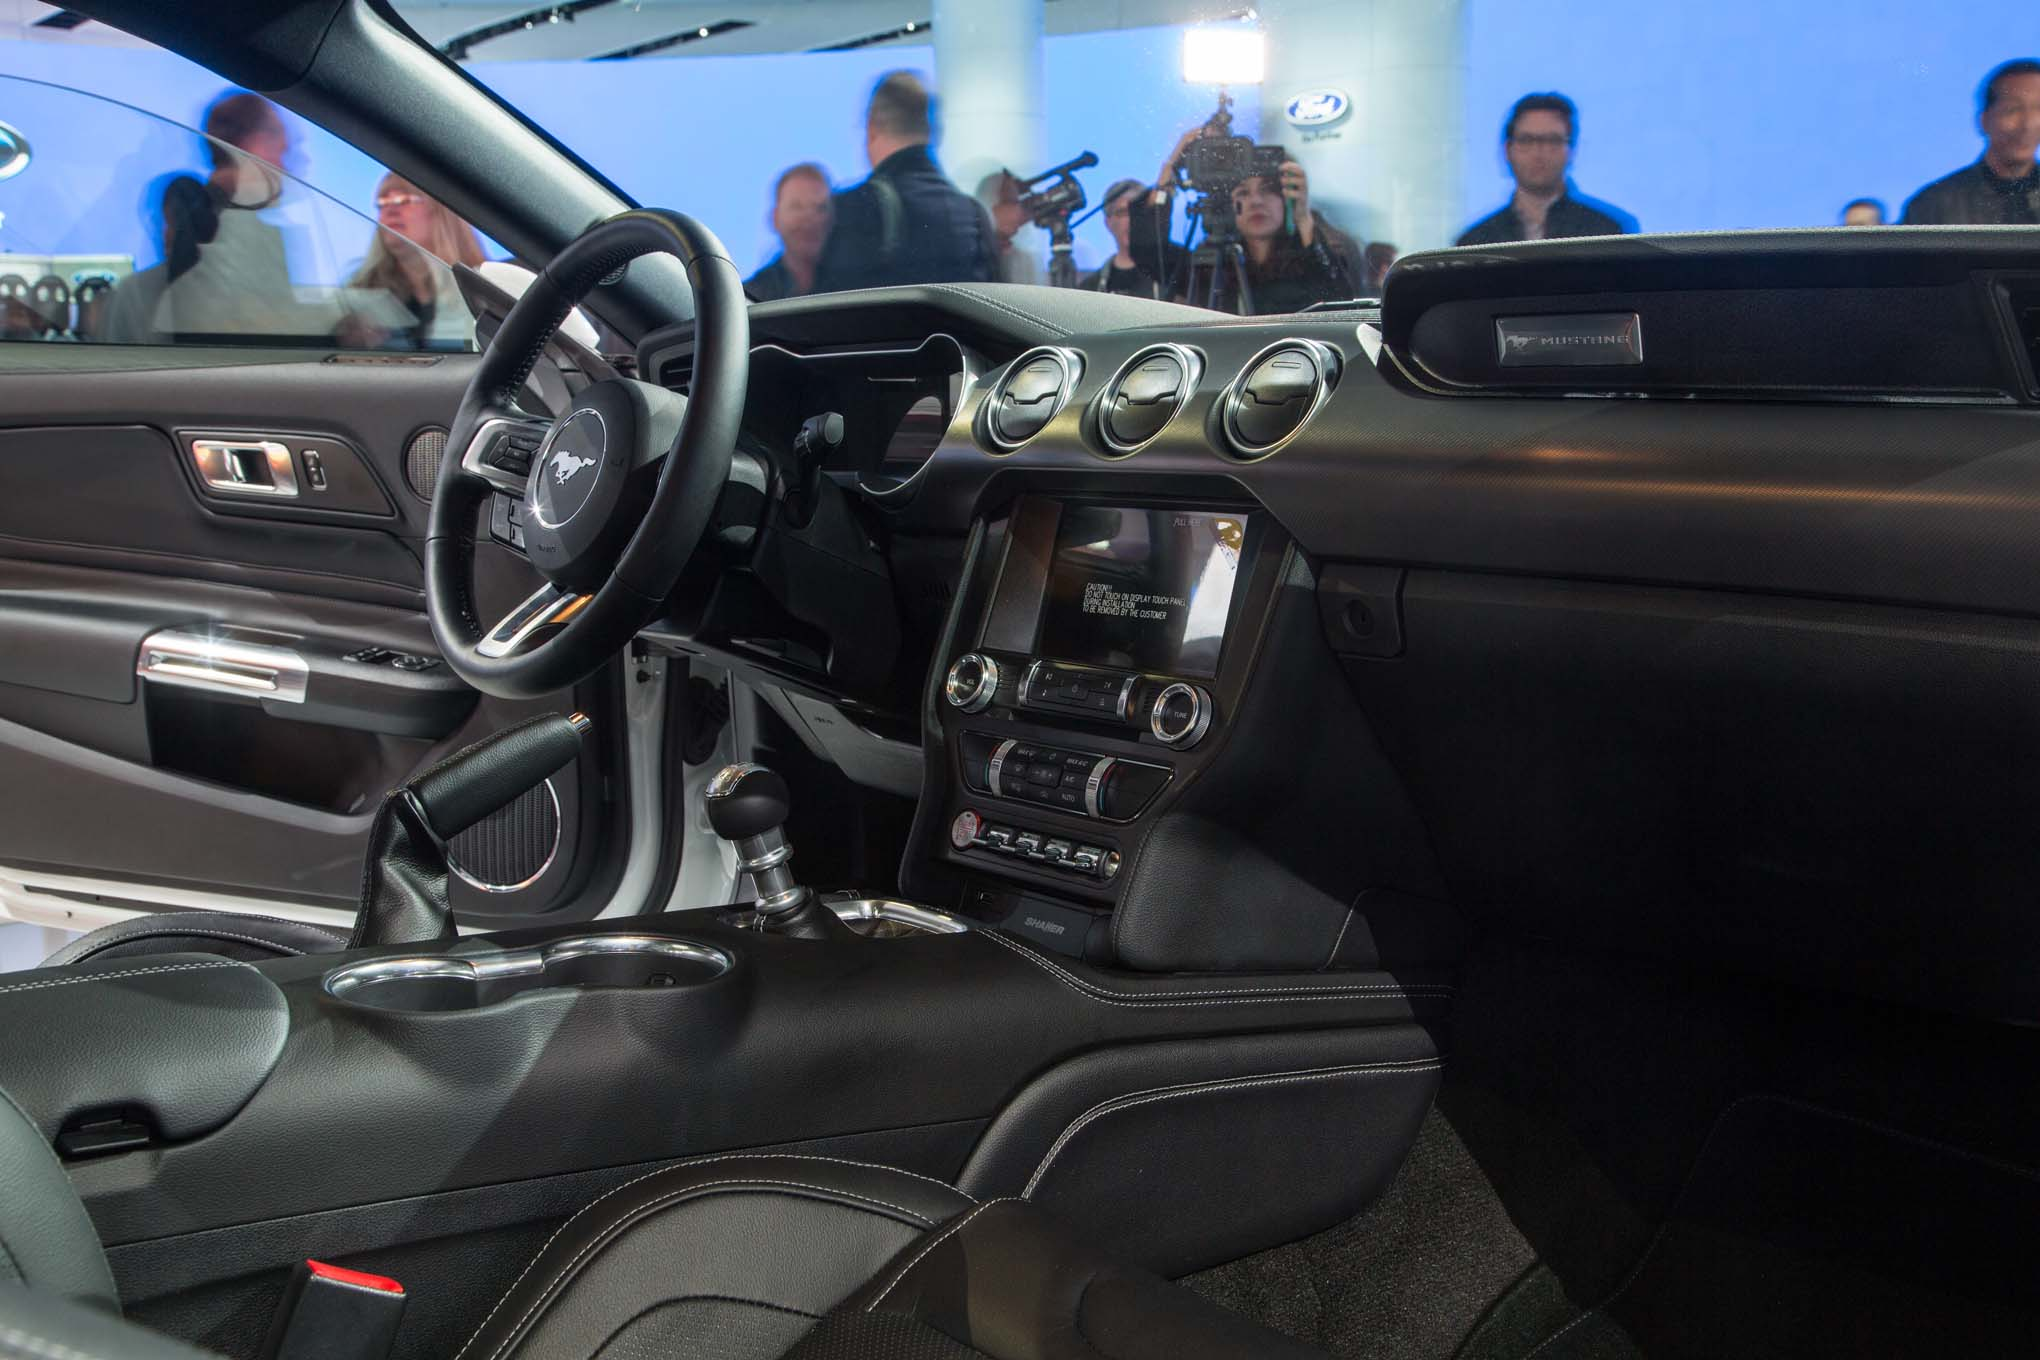 2018-Ford-Mustang-GT-interior-view